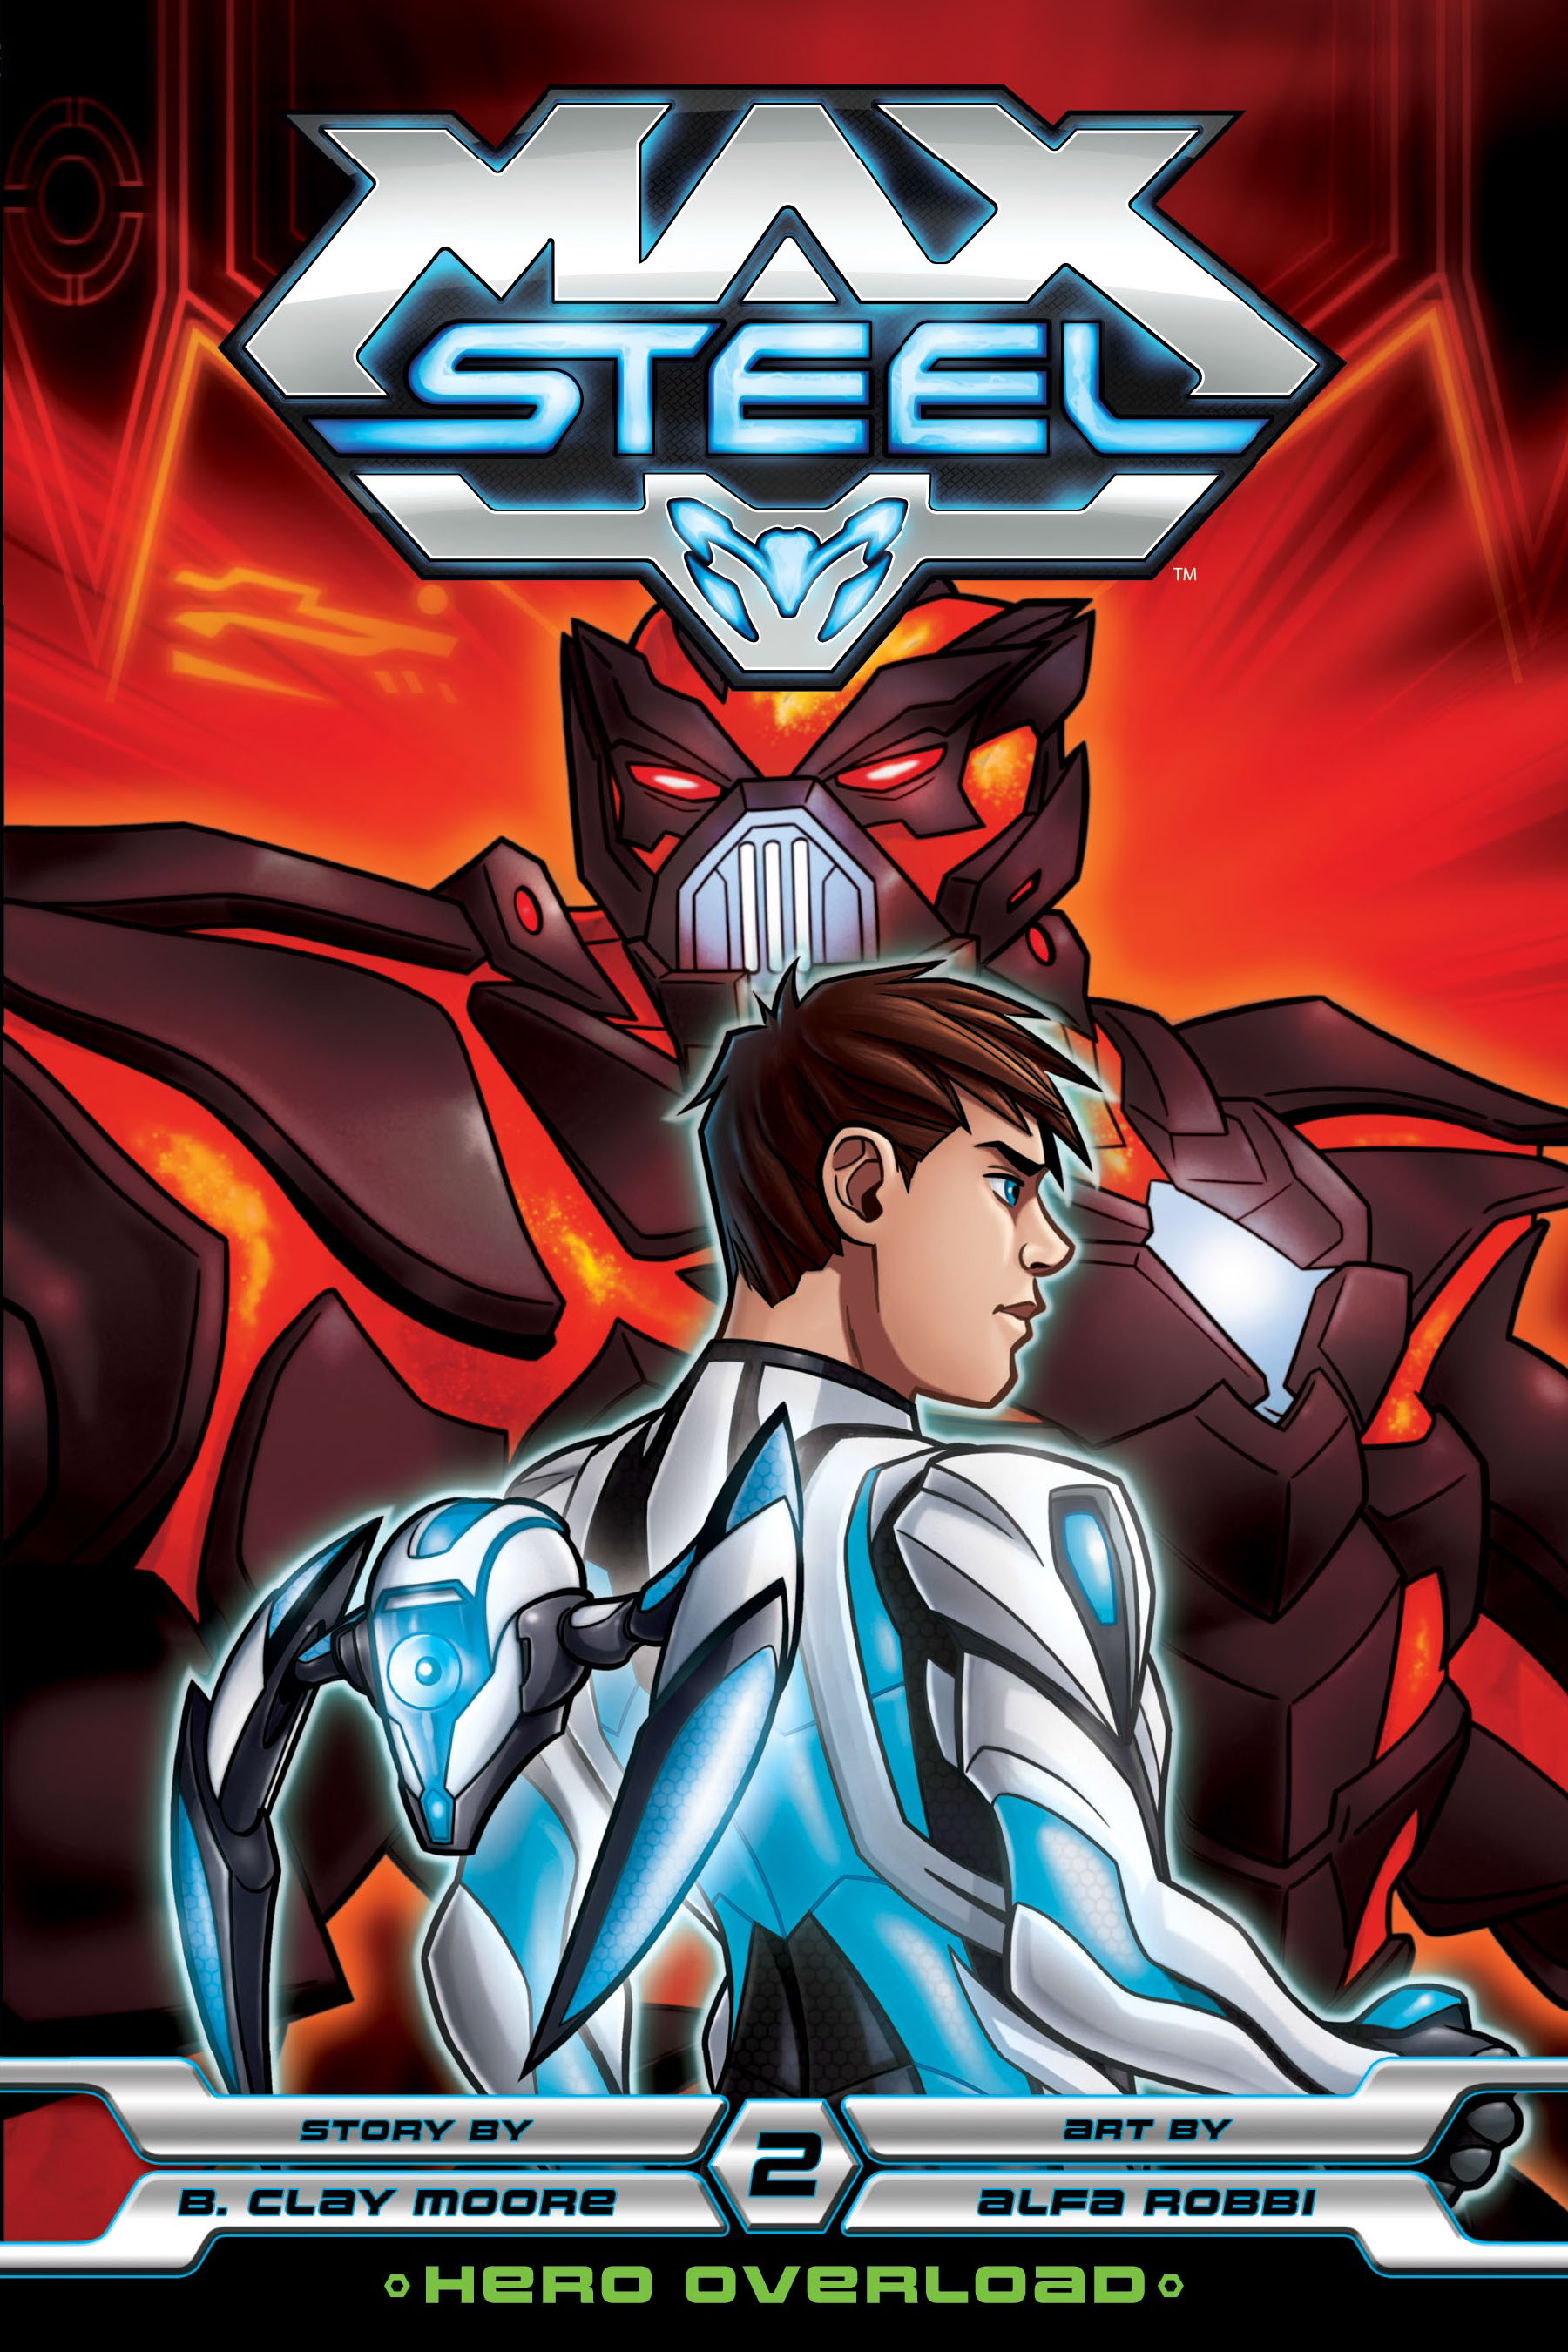 Max-steel-hero-overload-9781421557267_hr